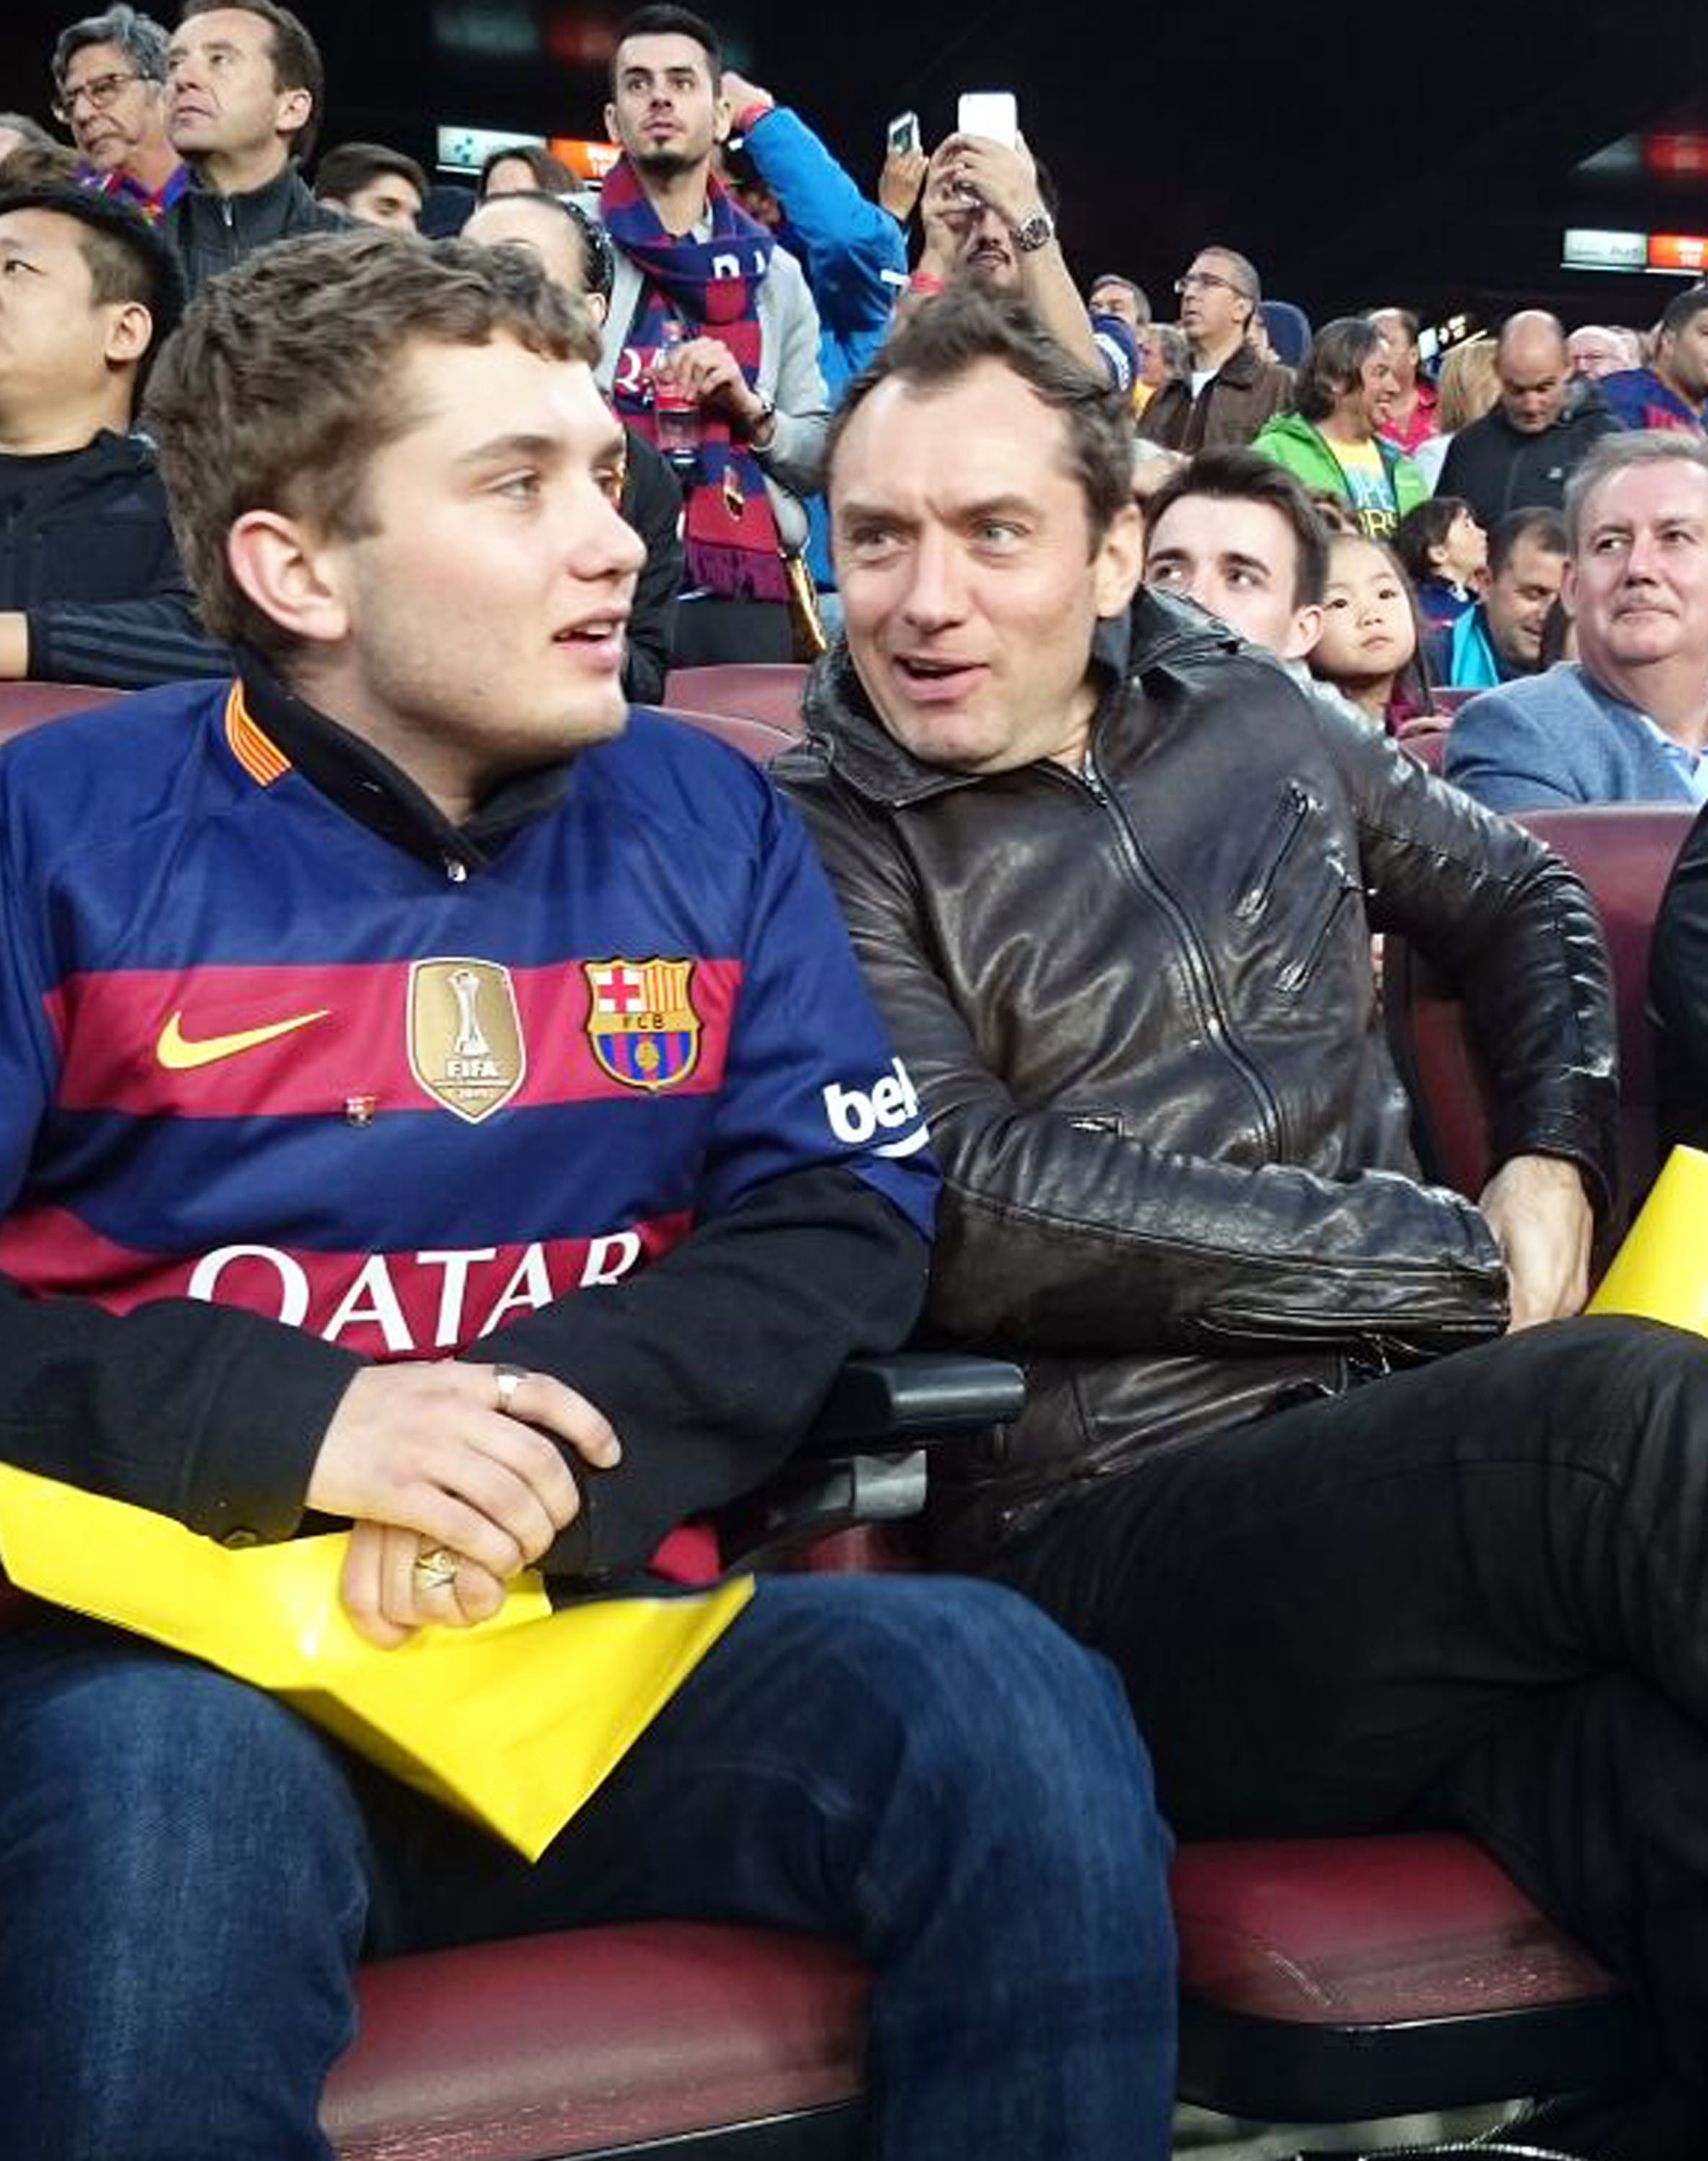 Jude Law catches a soccer game with his lookalike son